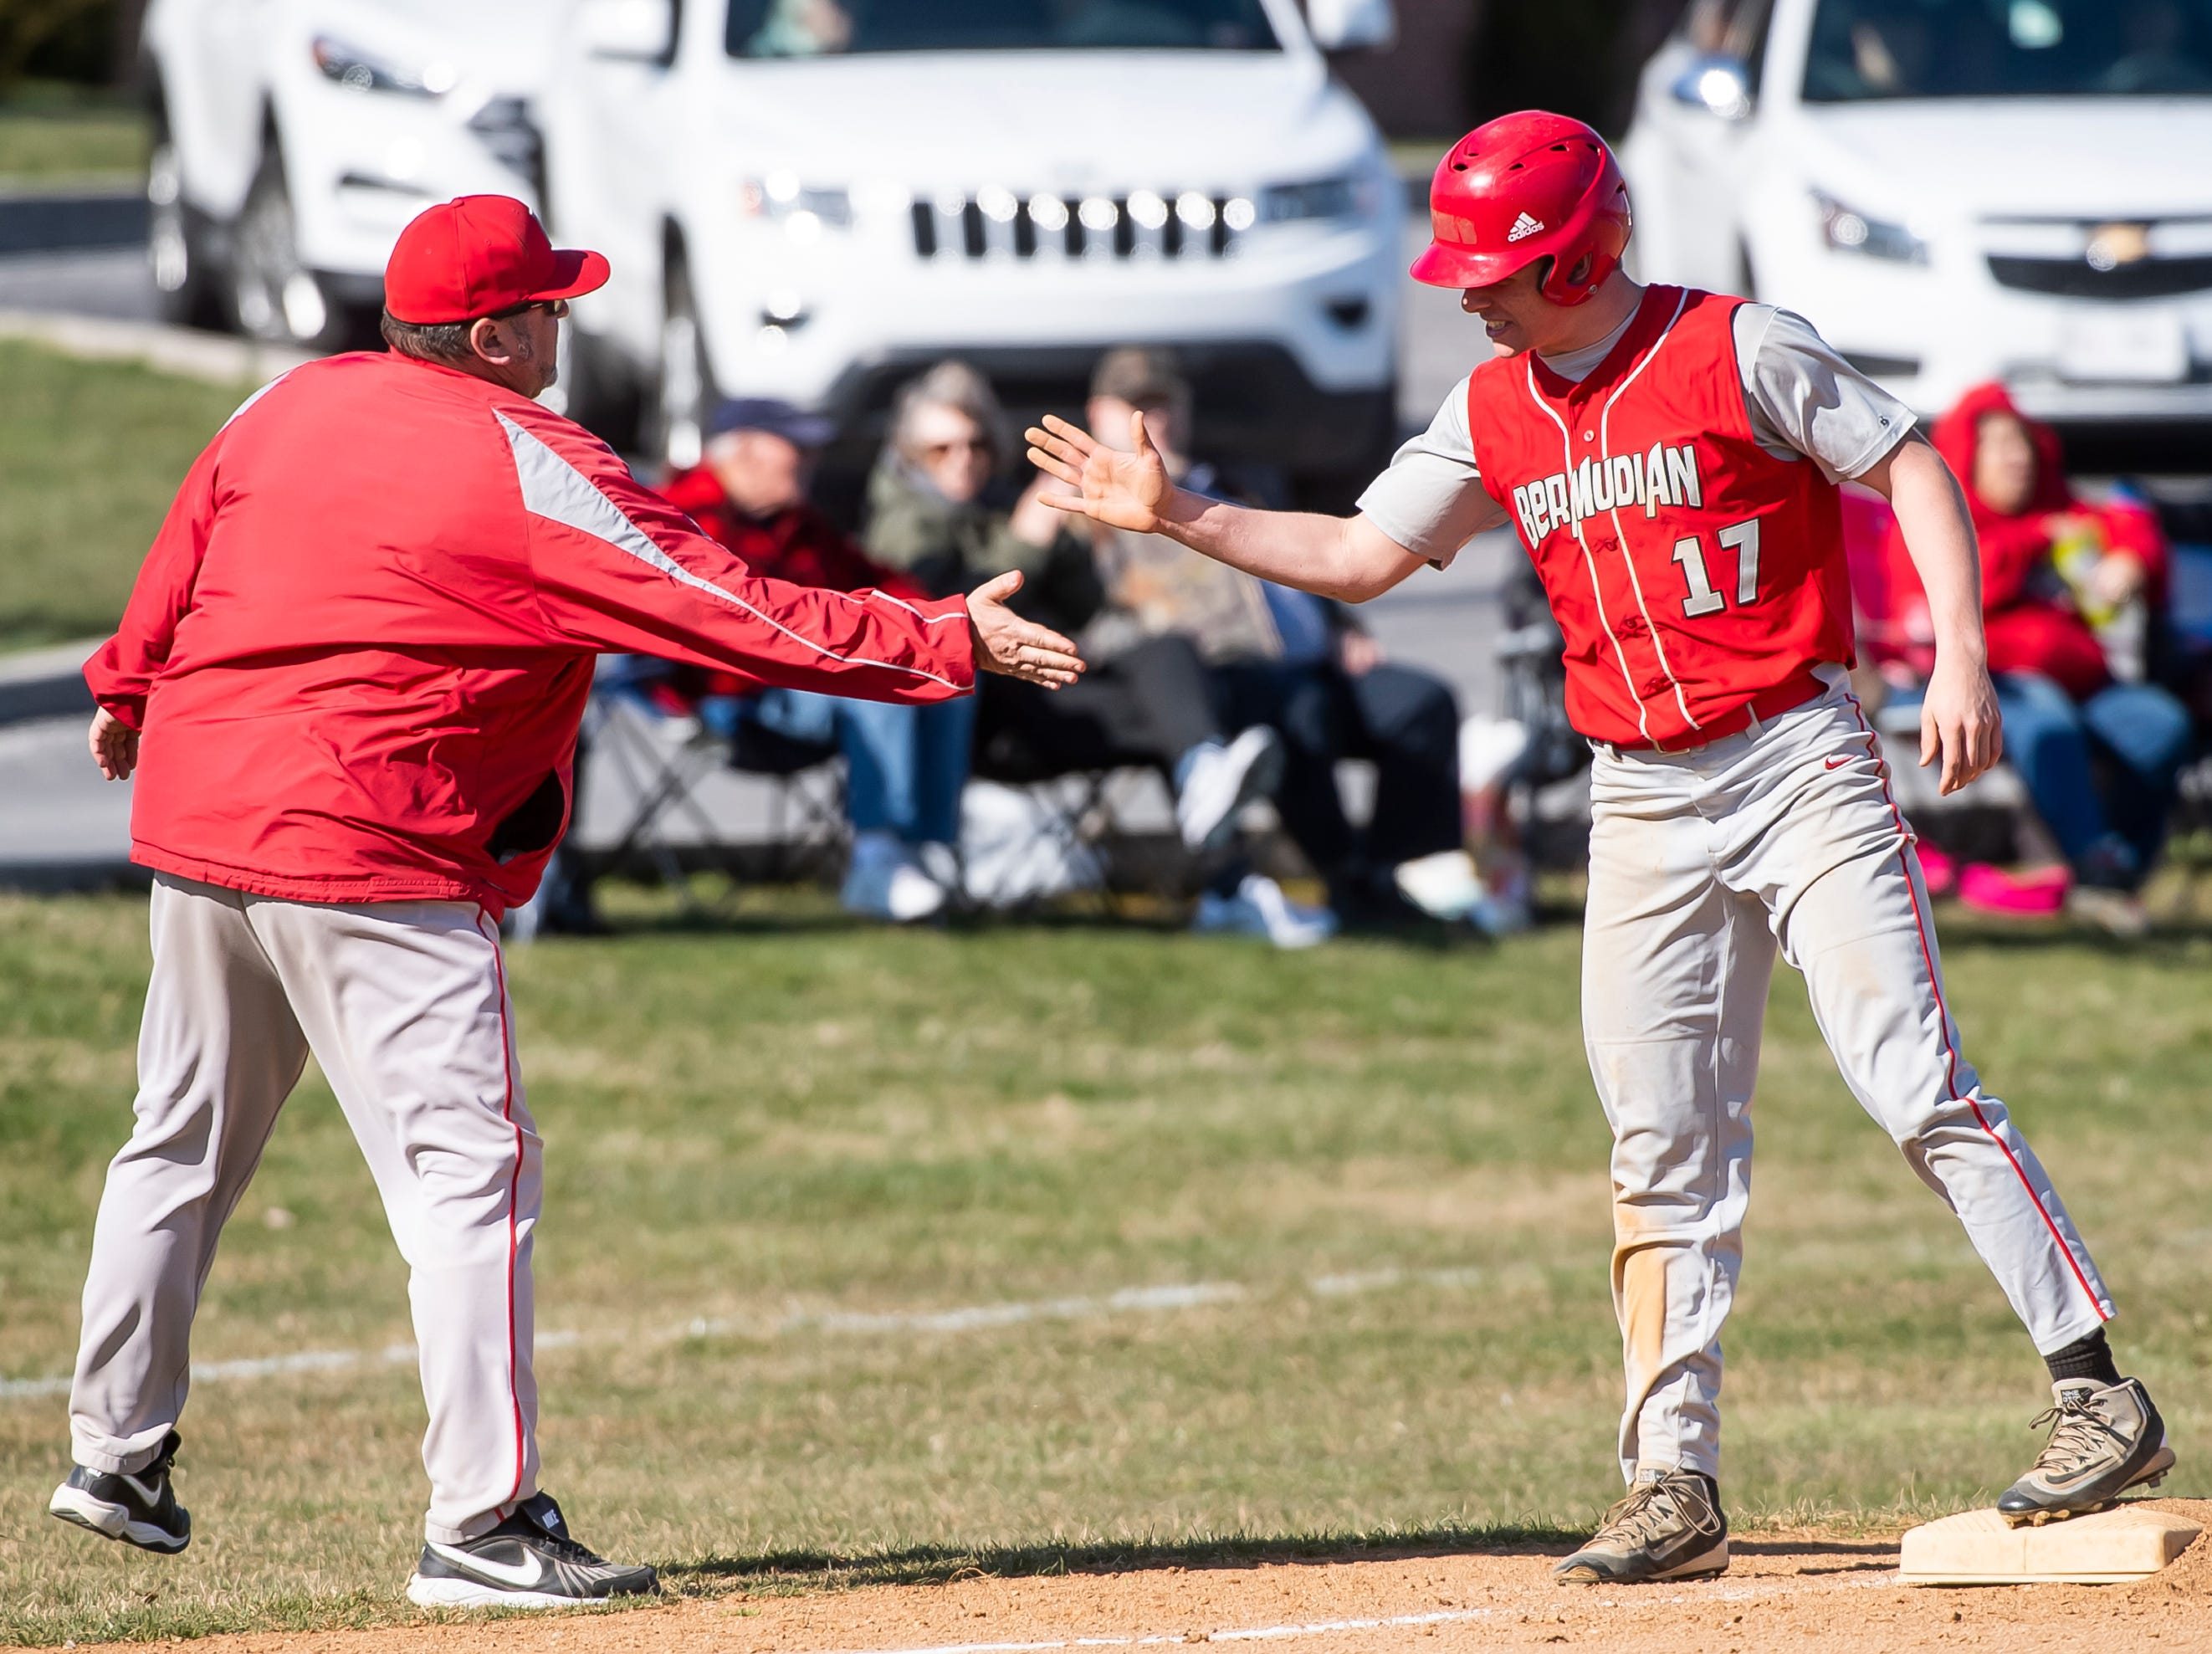 Bermudian Springs' Nate McCollum (17) gets a high-five from assistant coach Eric McClintic during a YAIAA baseball game against West York on Wednesday, April 3, 2019. The Eagles fell 14-11.